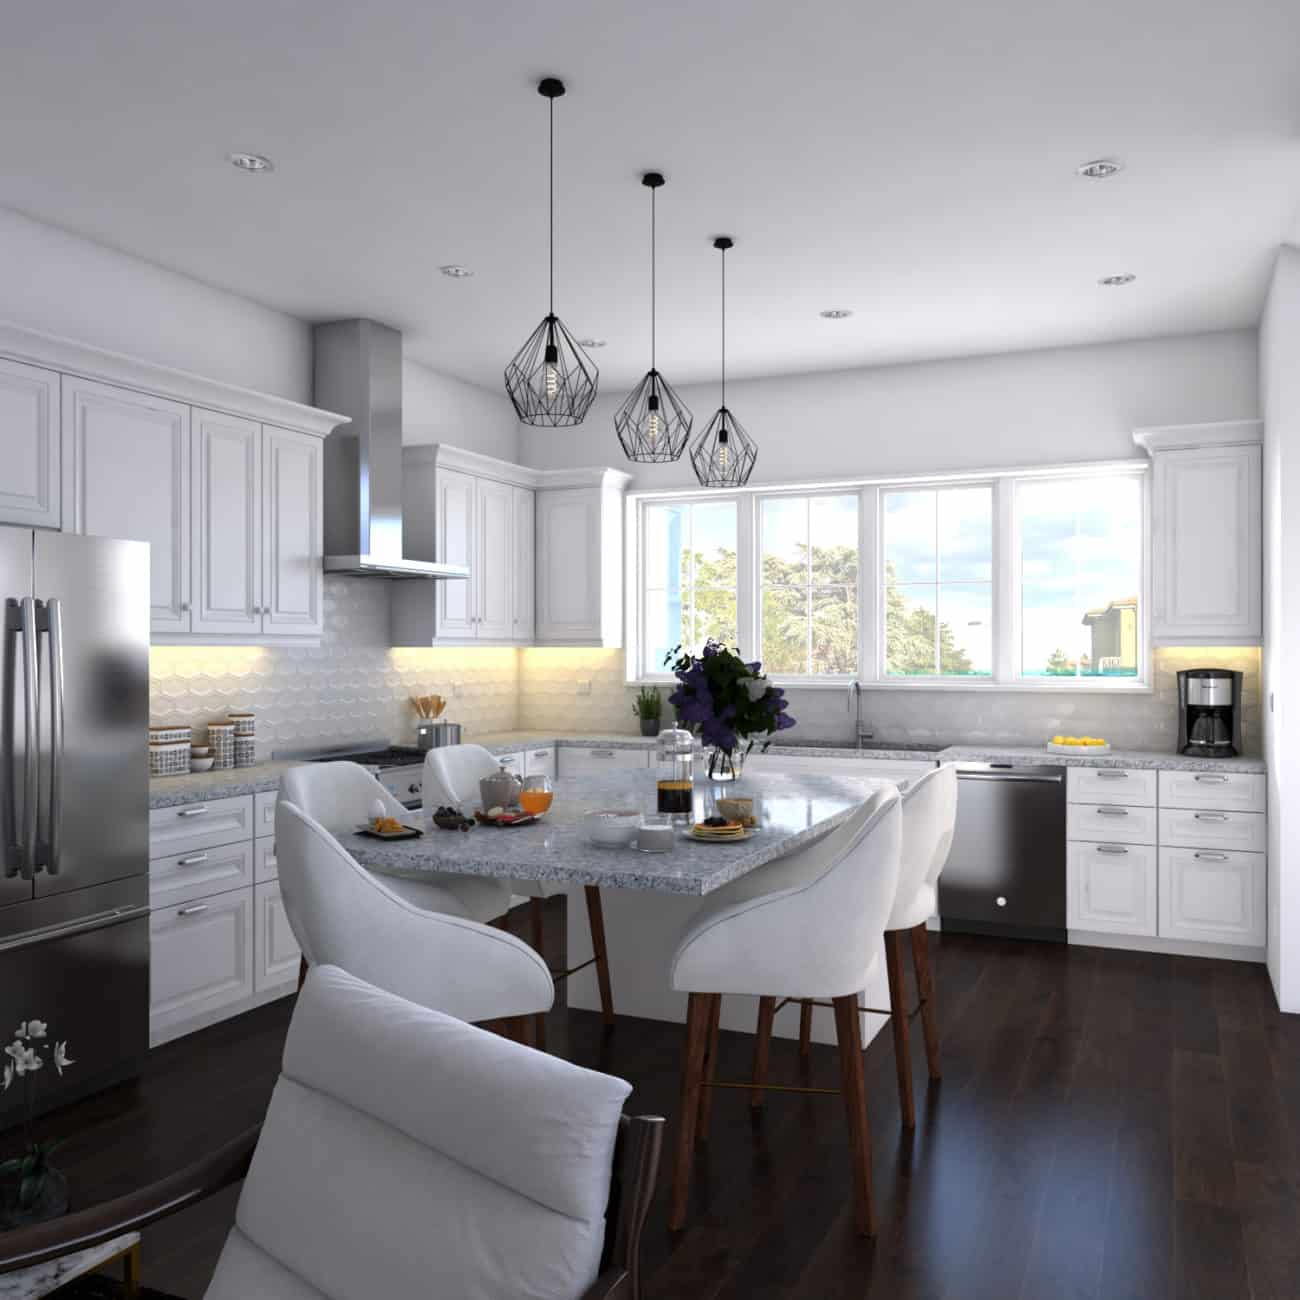 West Hillhurst Rowhouse luxury custom kitchen